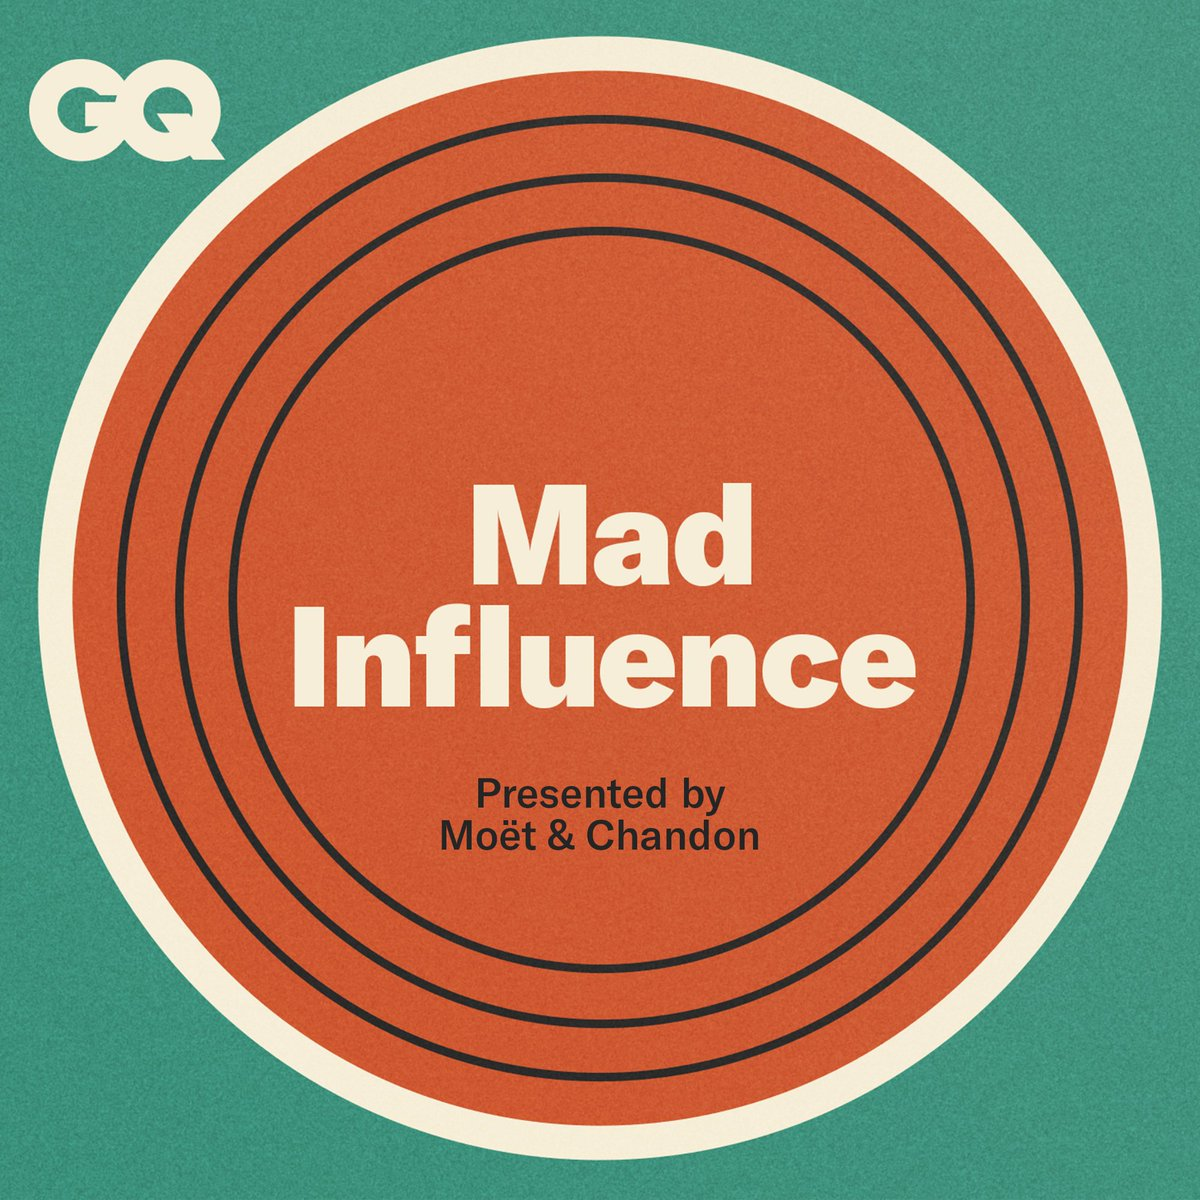 Episode 2 of #MadInfluence with director Damien Chazelle and GQ's Jim Nelson is here https://t.co/hQPOtIrix1